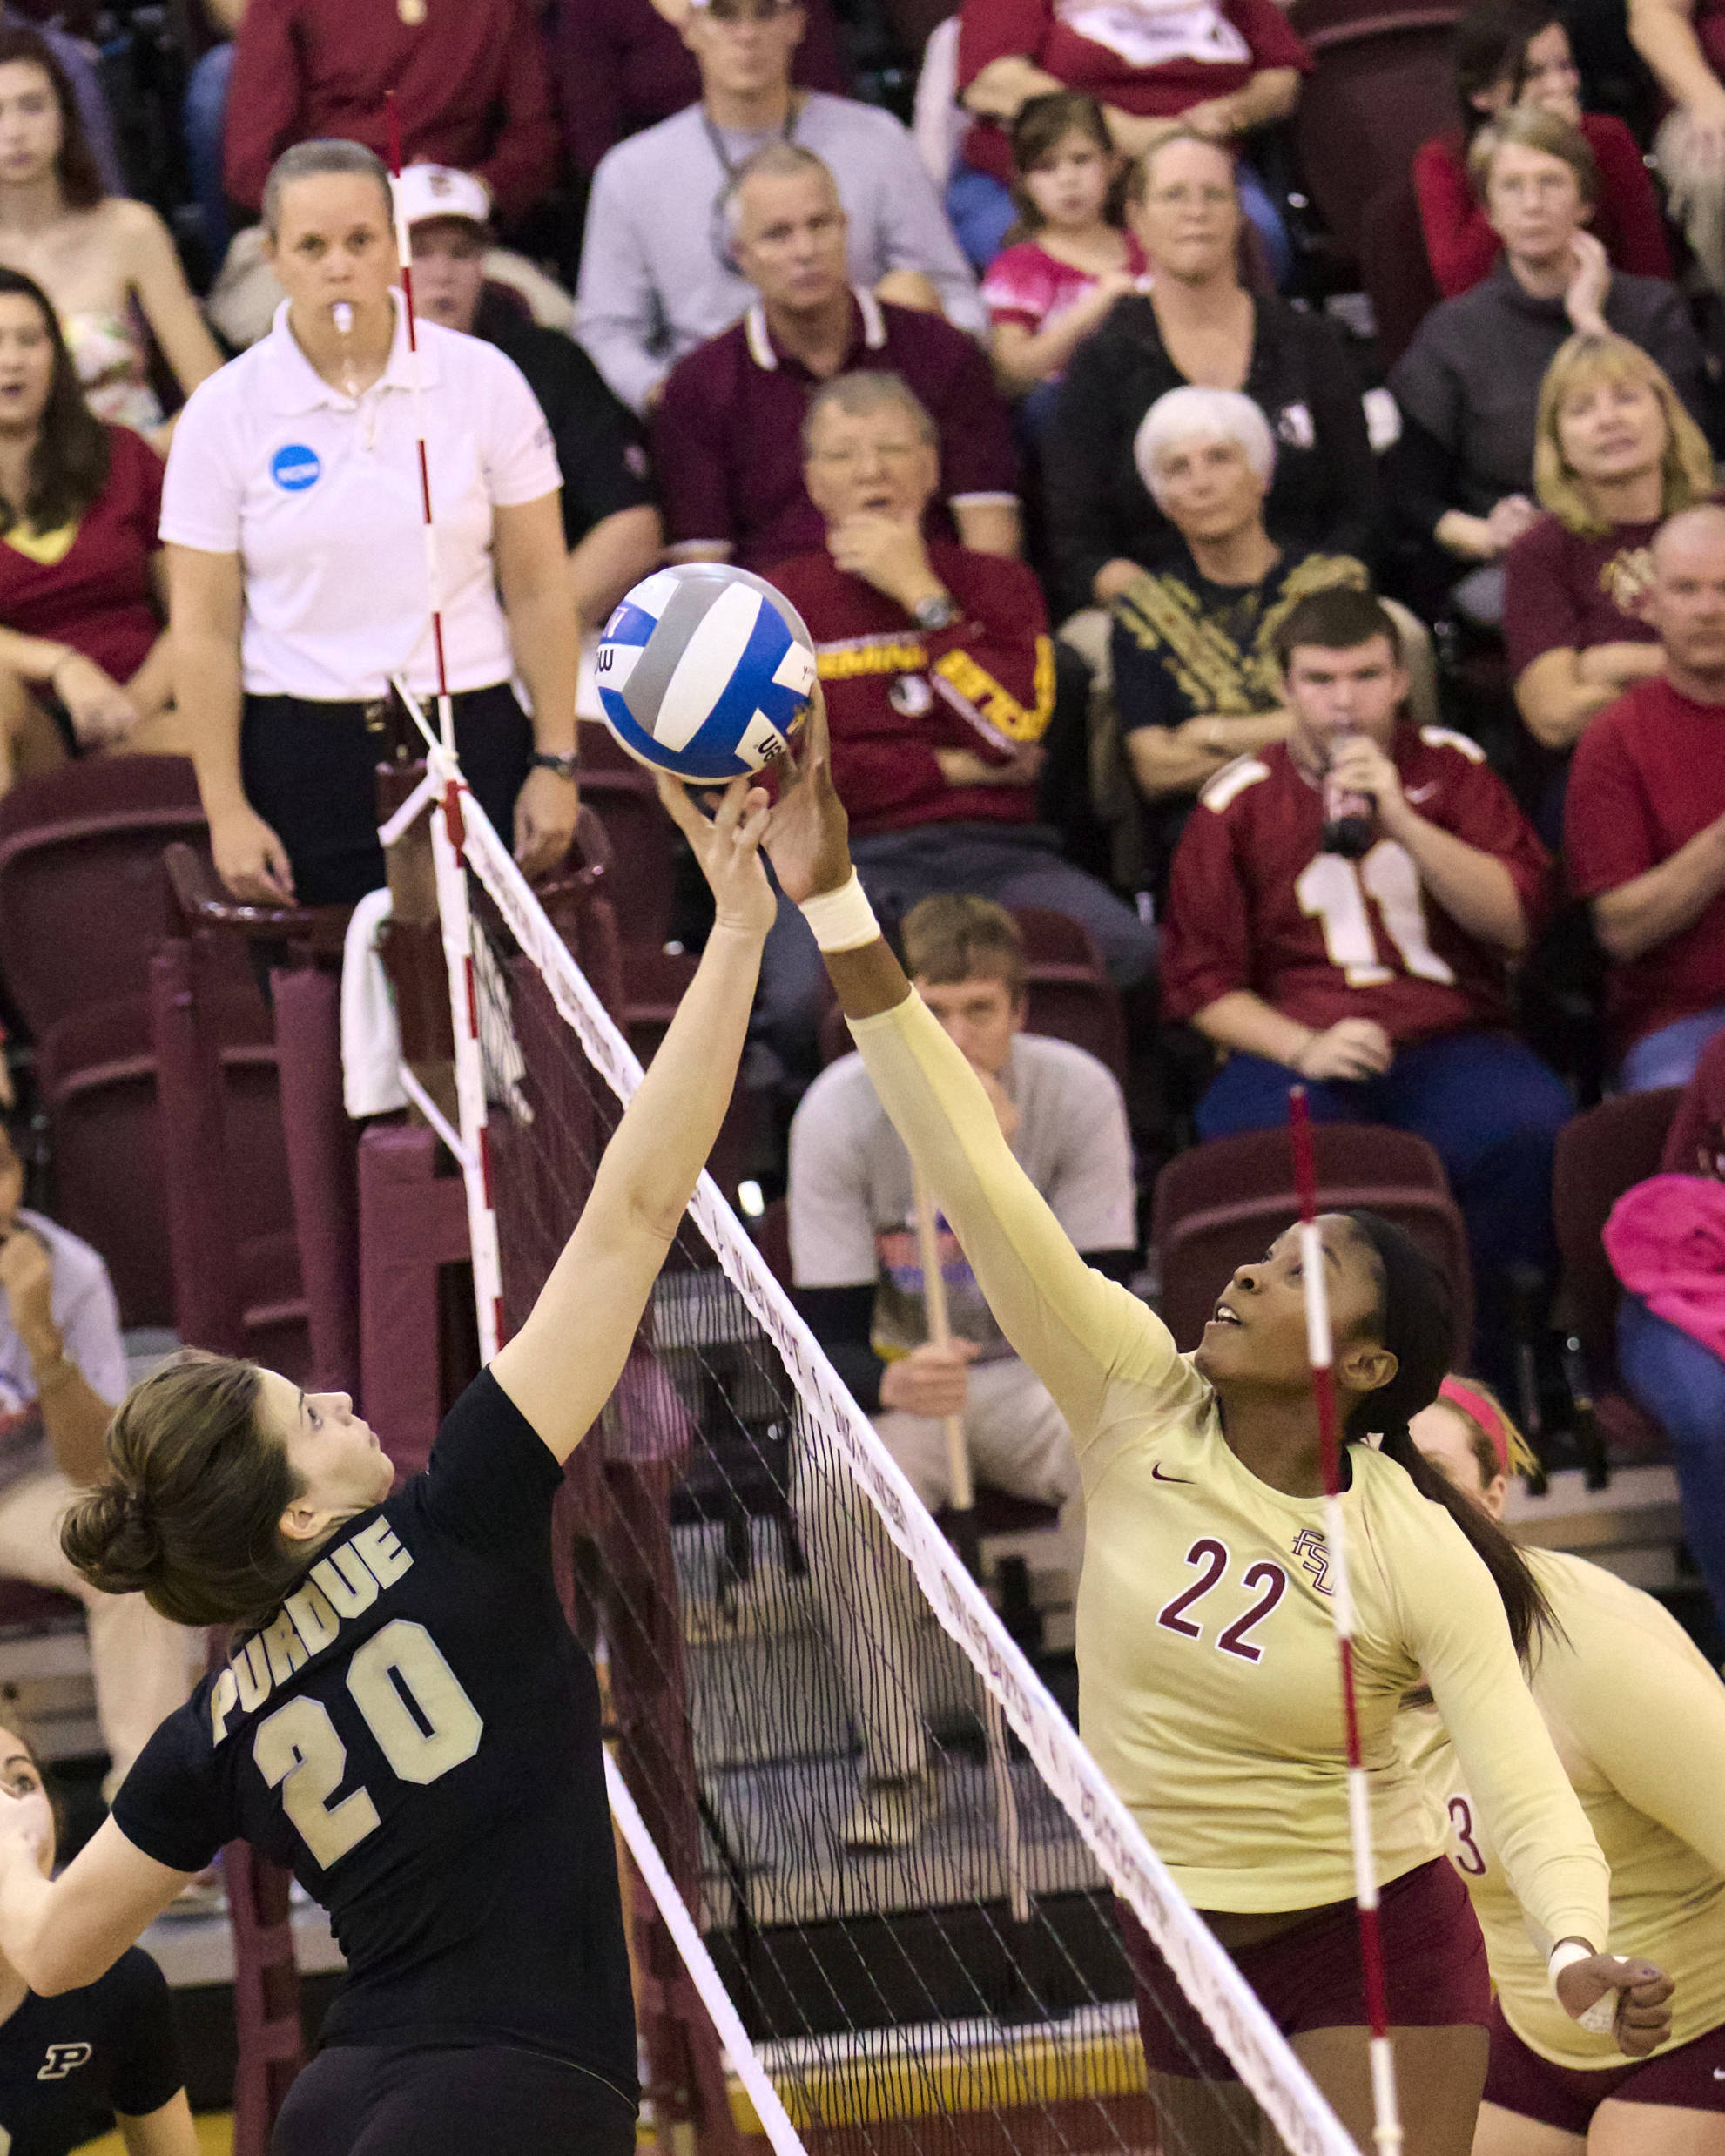 Sareea Freeman (22), FSU vs Purdue, 12/01/12. (Photo by Steve Musco)